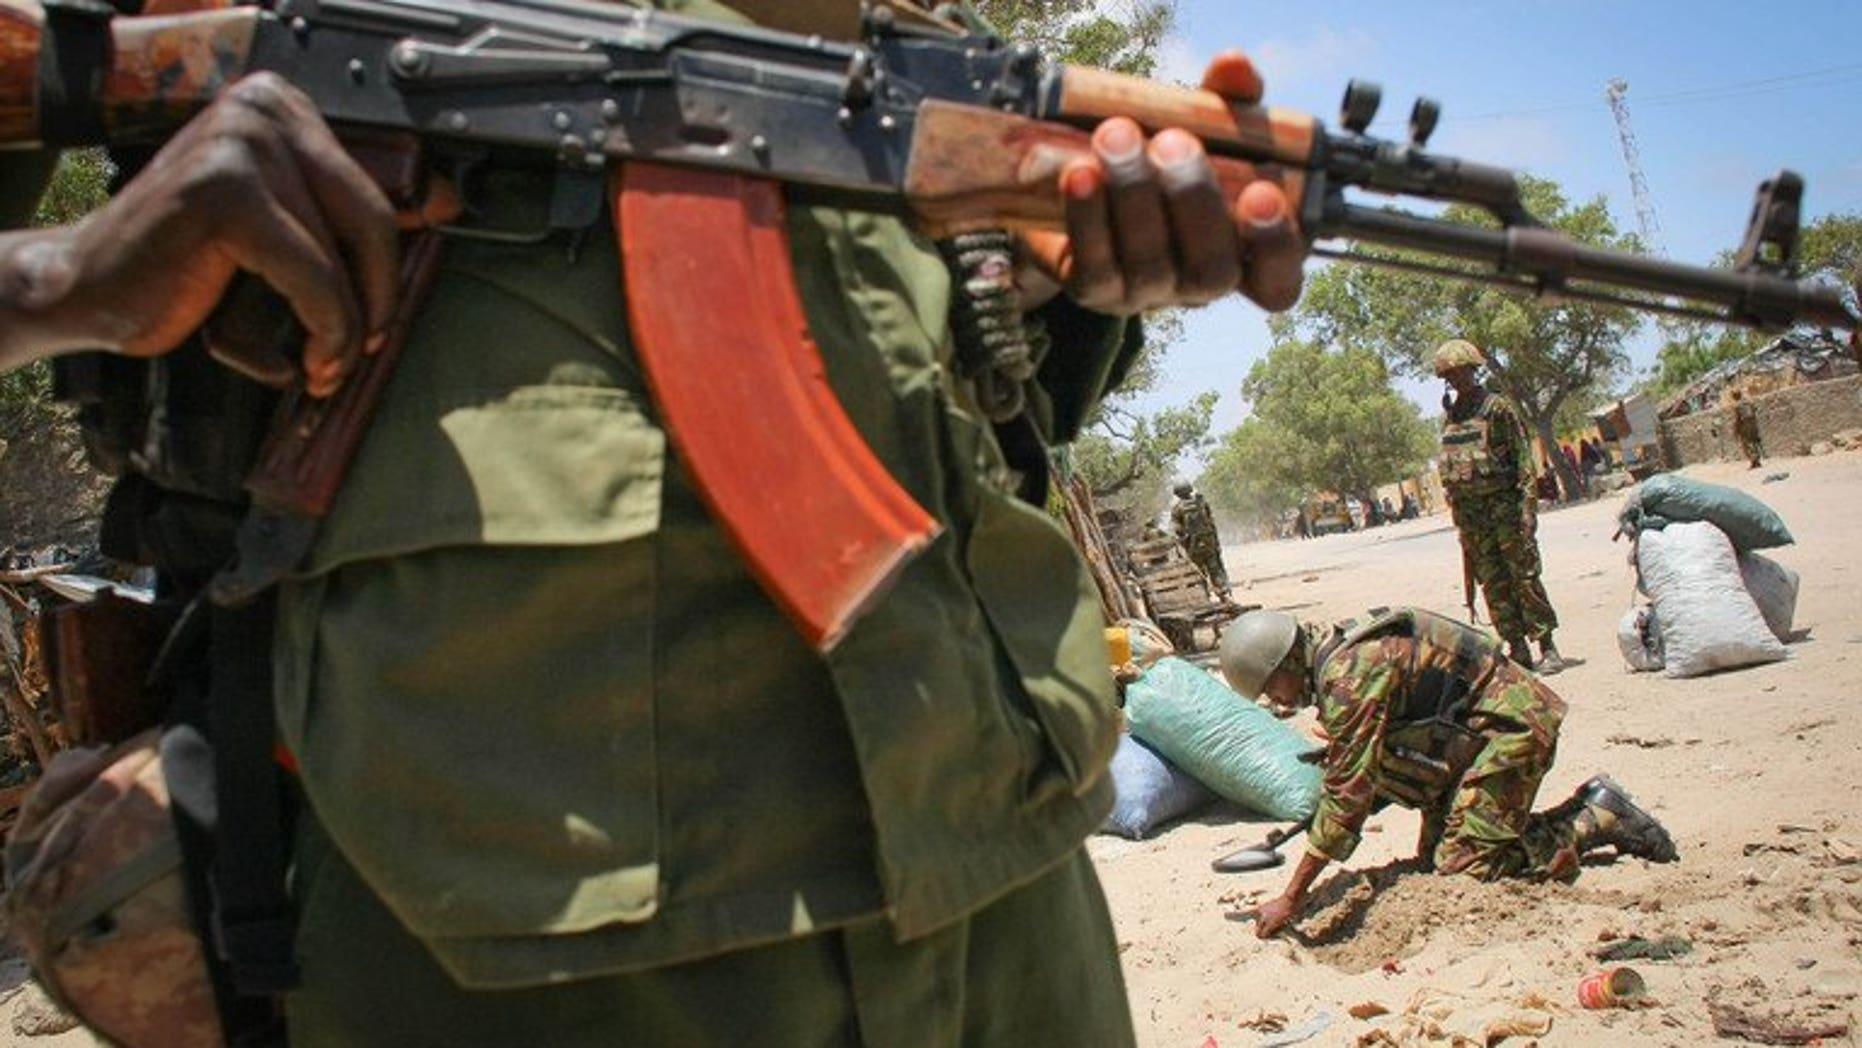 A fighter of the Ras Kimboni Brigade militia stands guard as a team searches for explosives in the Somali port city of Kismayo, on October 7, 2013. At least five people have been killed in clashes between rival Somali warlords fighting for control of the city, residents said.